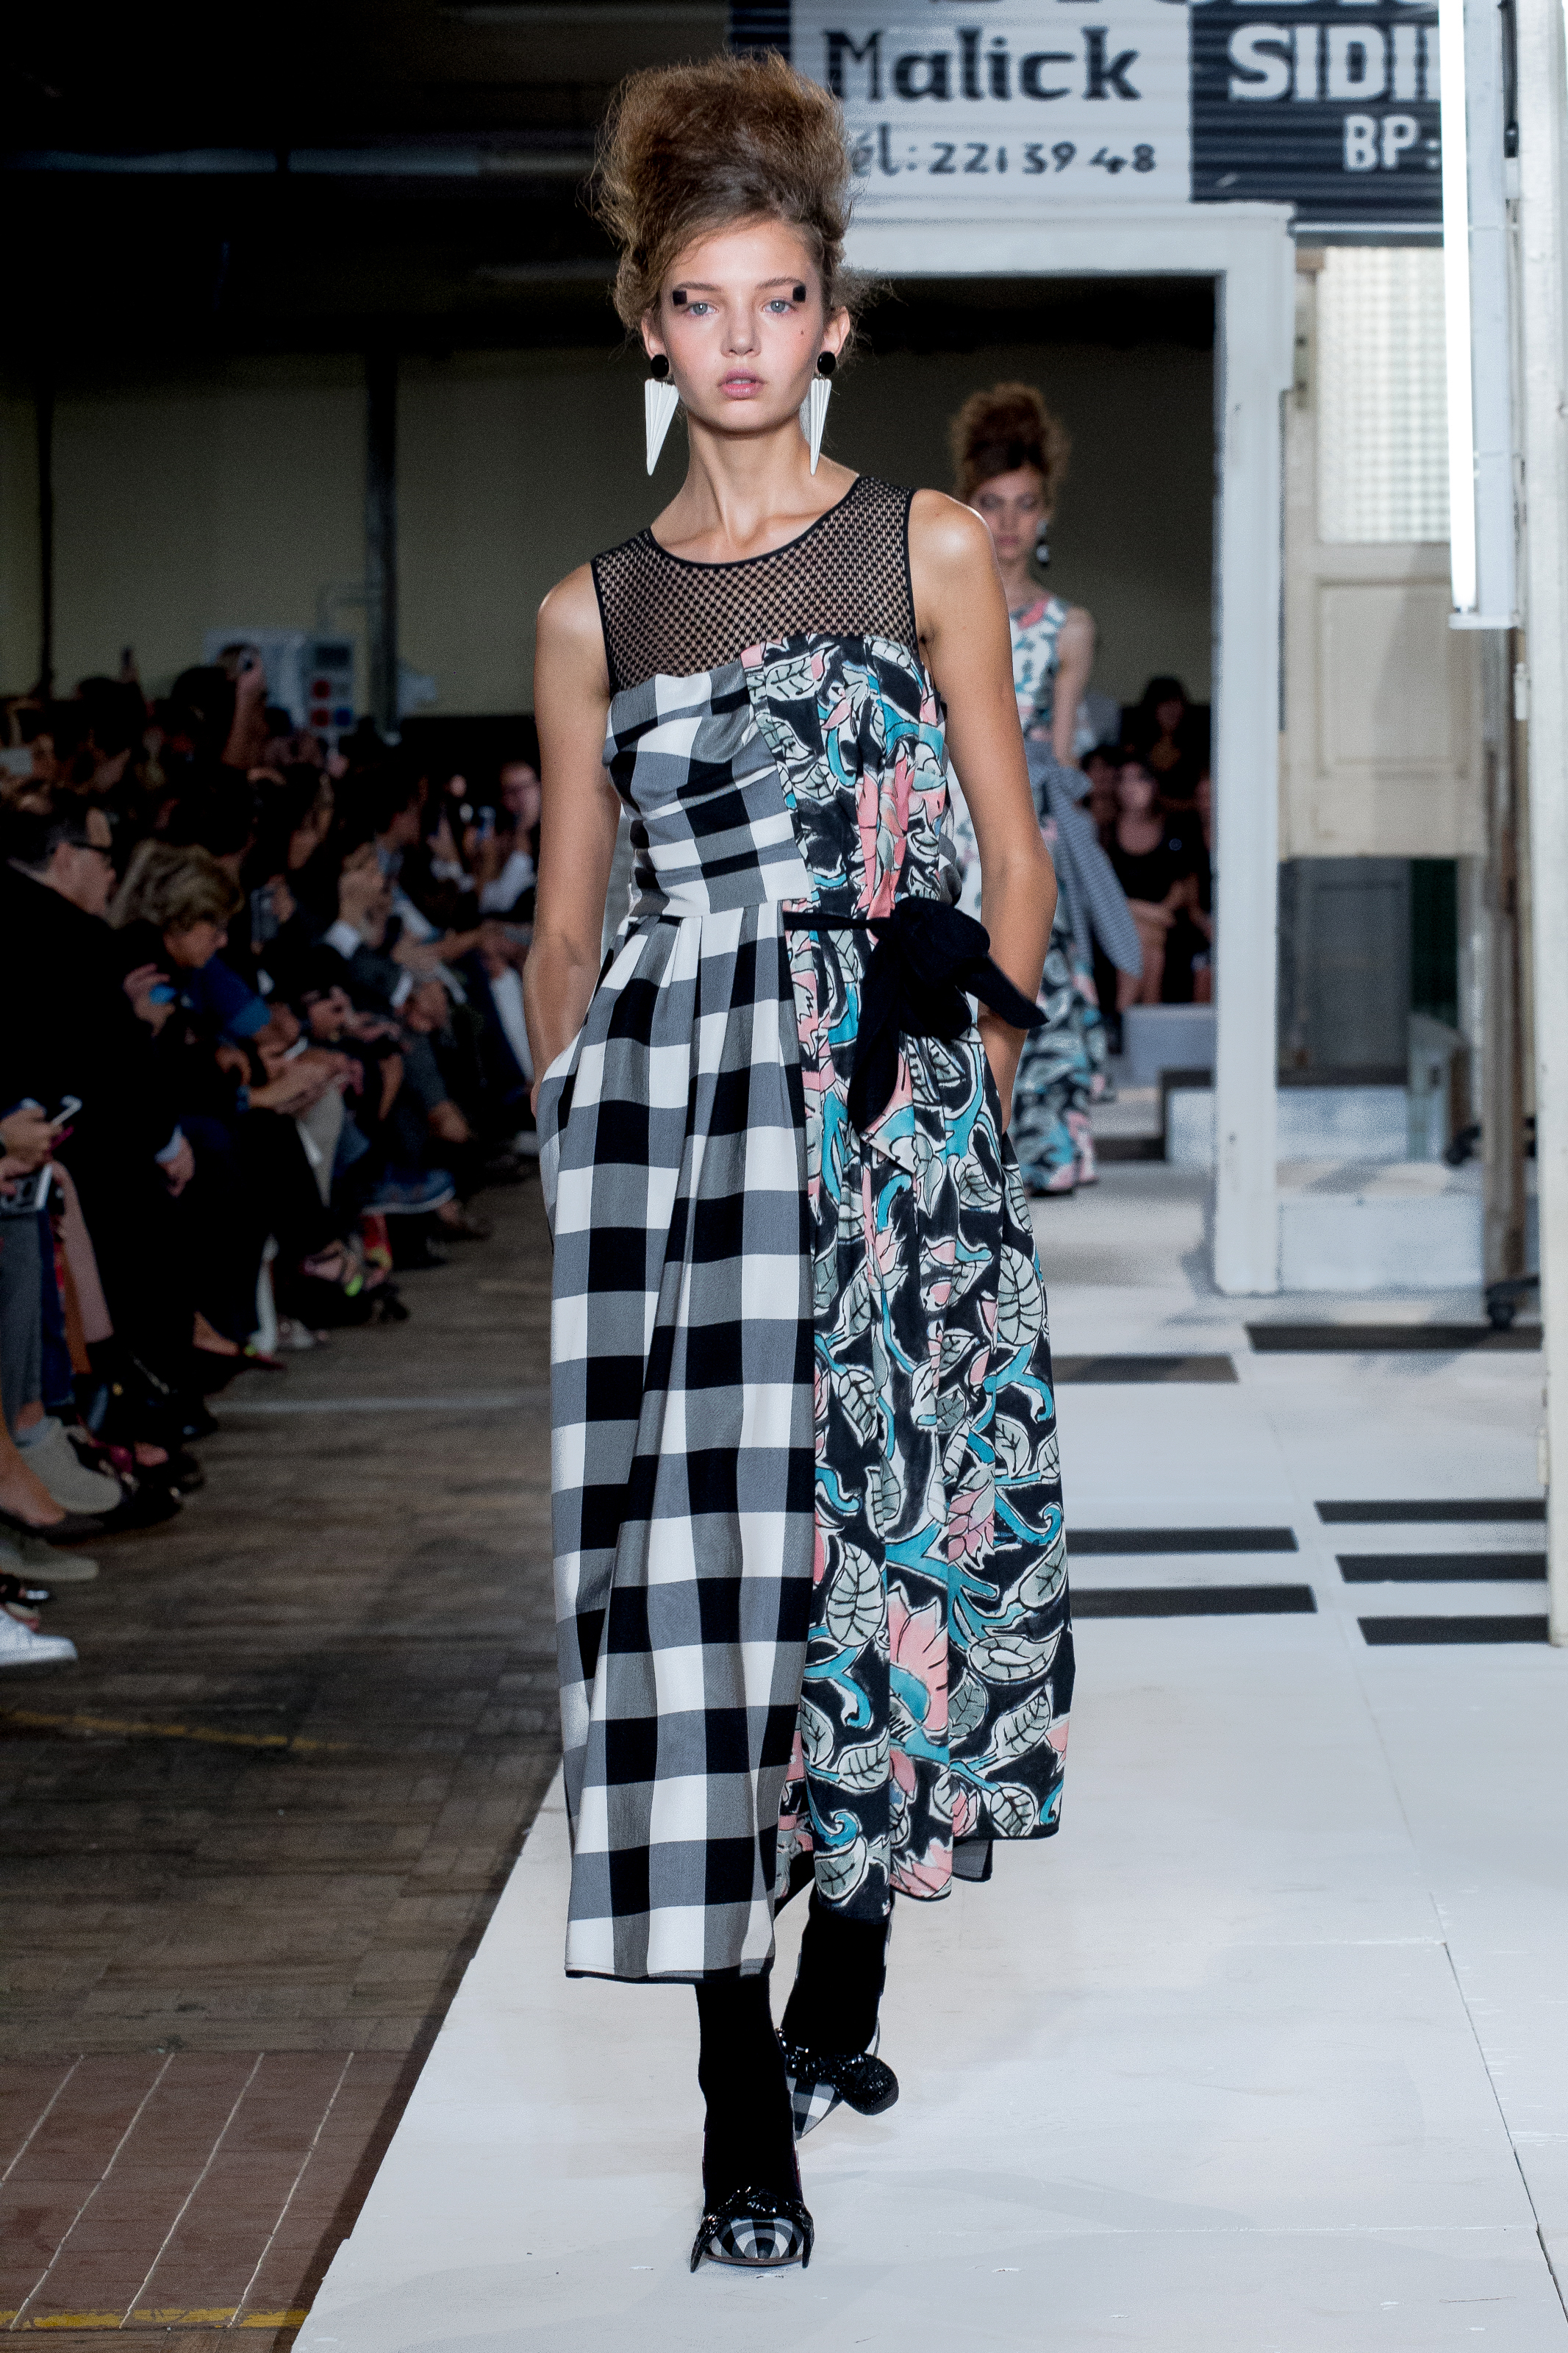 Black and white gingham with shoes by Antonio Marras -